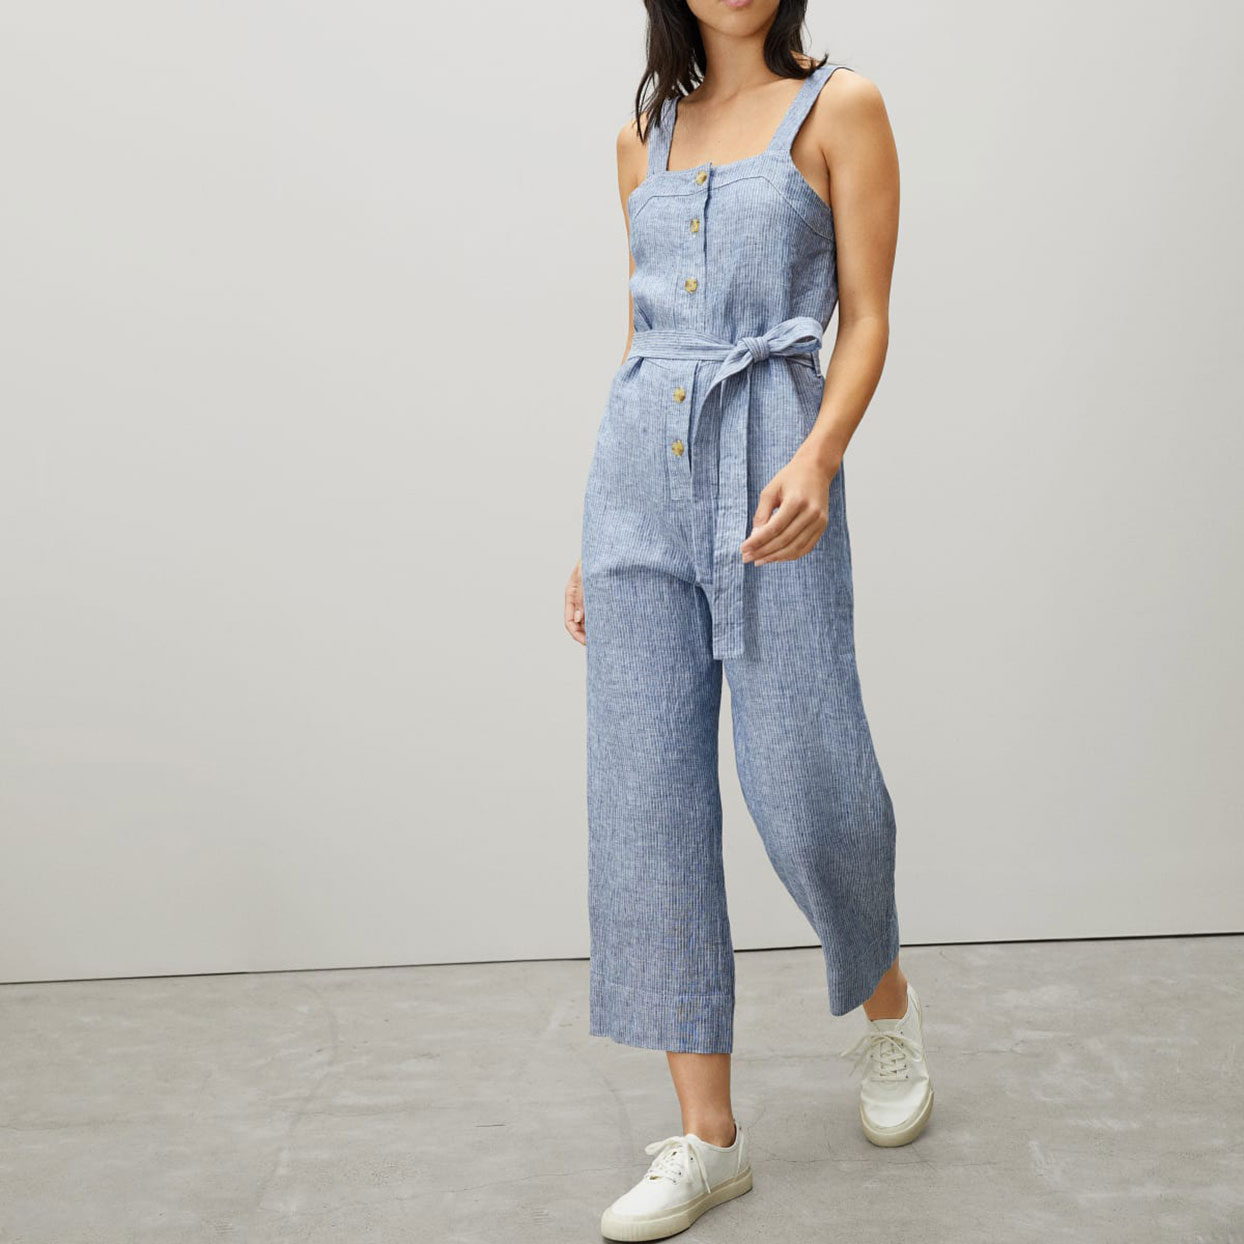 The 16 Best Jumpsuits For Every Single Occasion